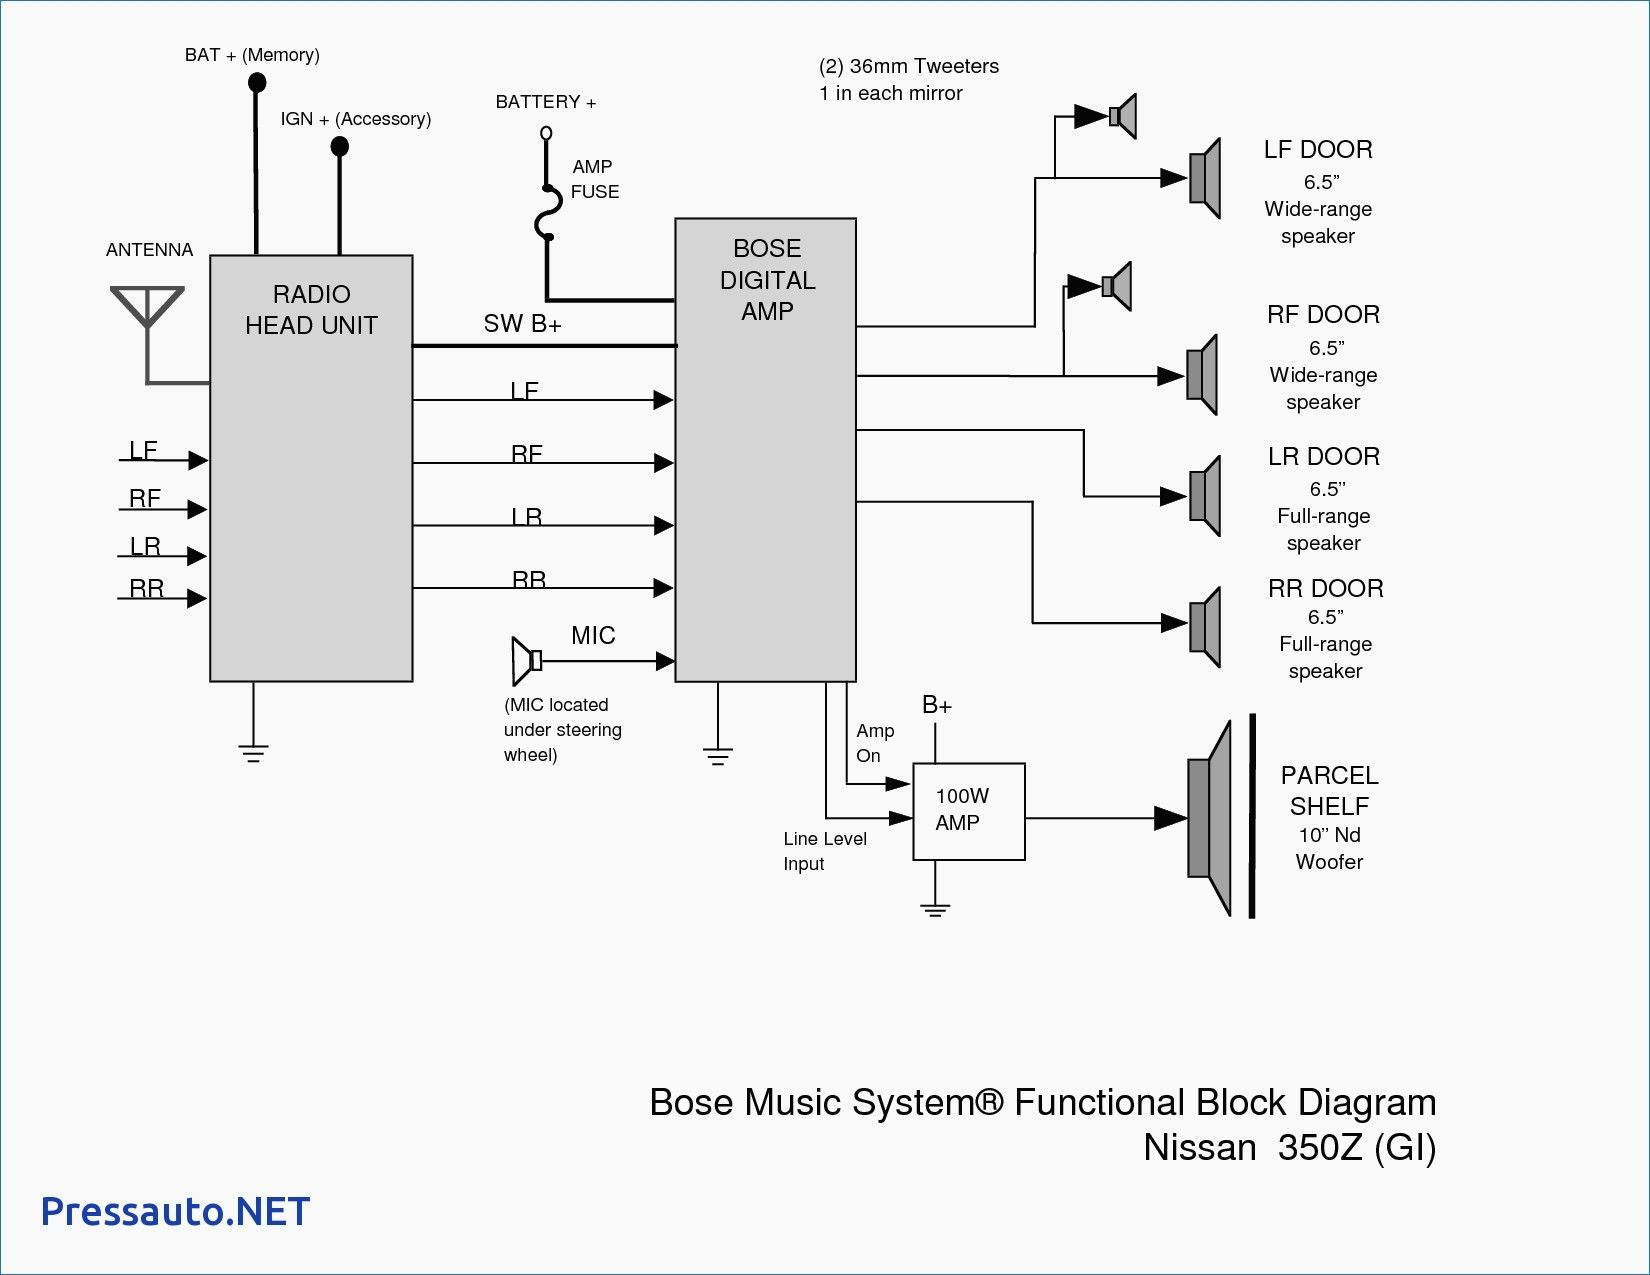 Bose Car Amplifier Wiring Diagram - bookingritzcarlton.info | Car  amplifier, Bose, AmplifierPinterest